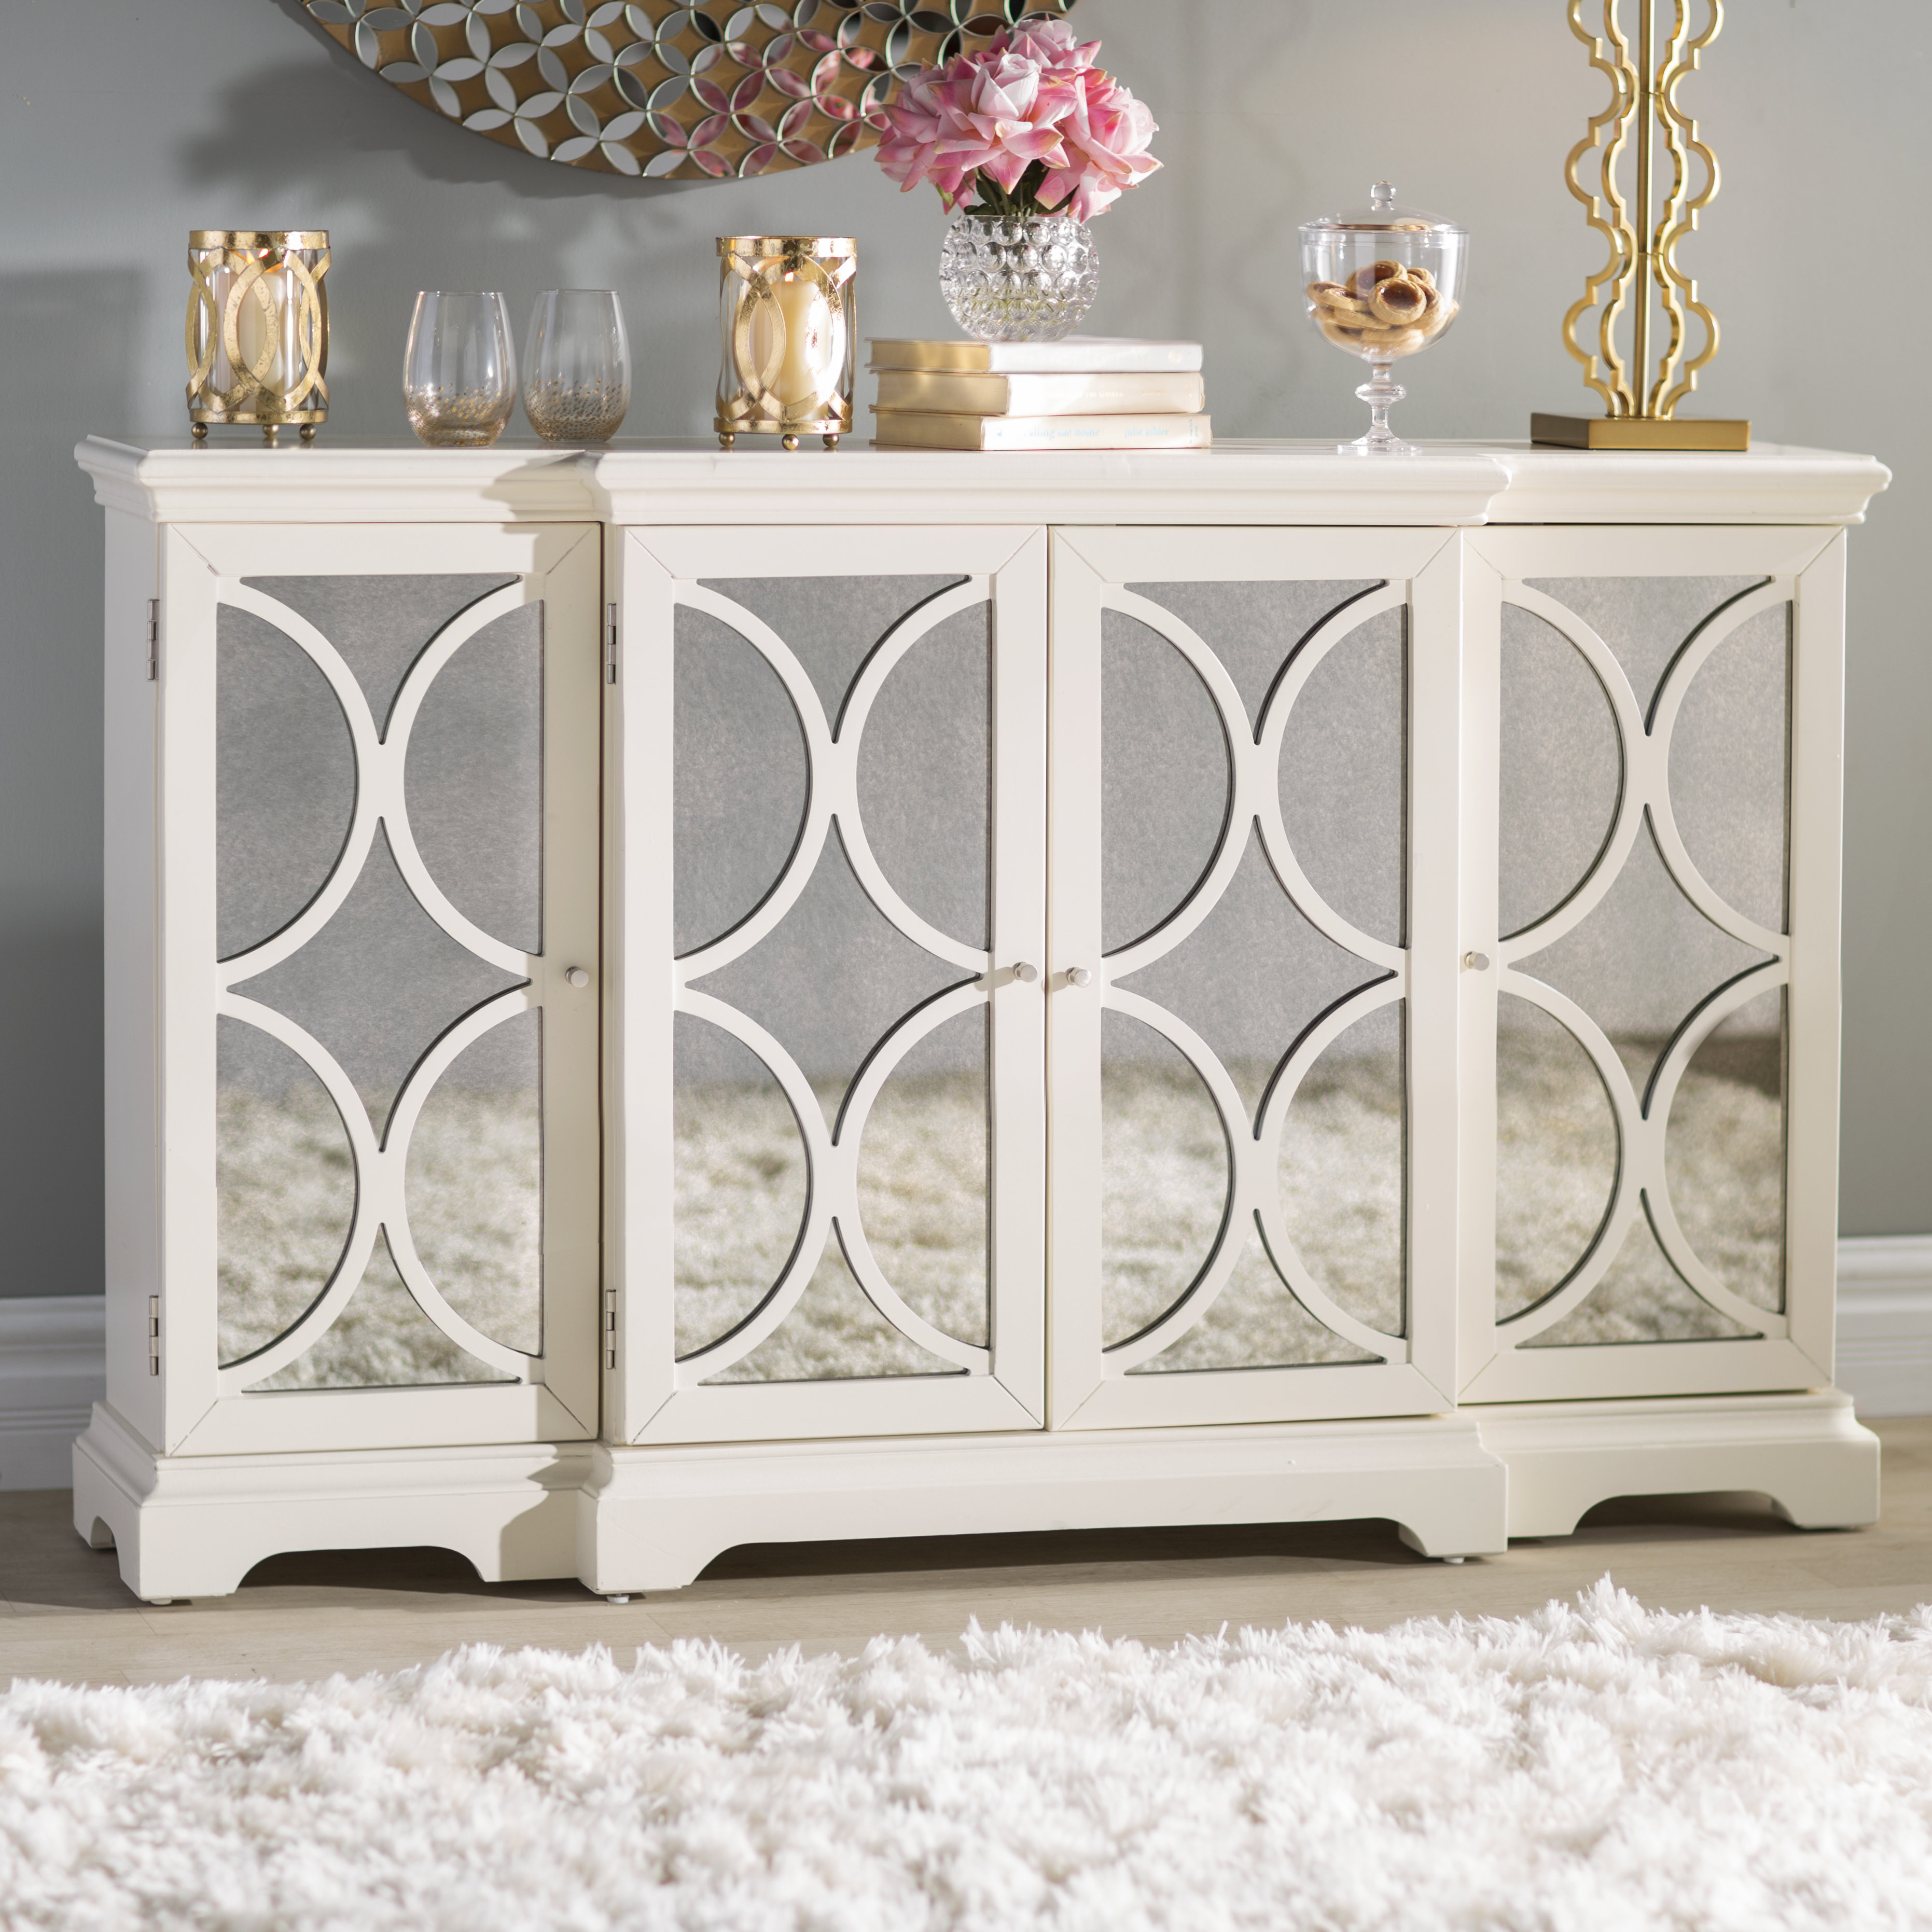 70 Inch Credenza You'll Love In 2019 | Wayfair Within Candace Door Credenzas (View 6 of 30)